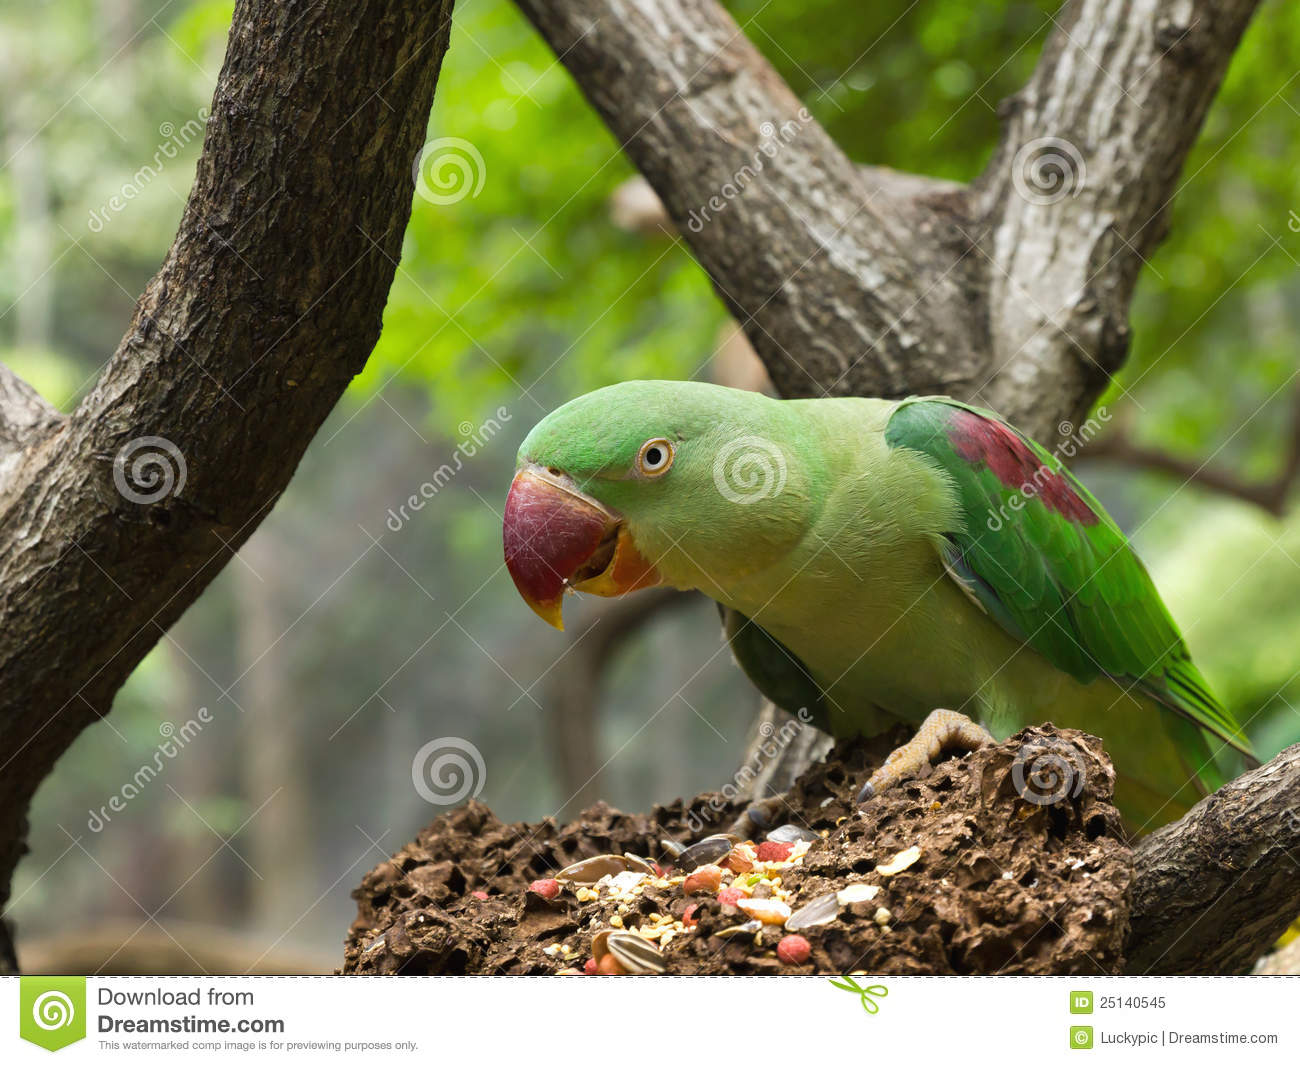 Beautiful Wallpapers 3d Animation Green Parrot Bird Eating Grains Royalty Free Stock Photo